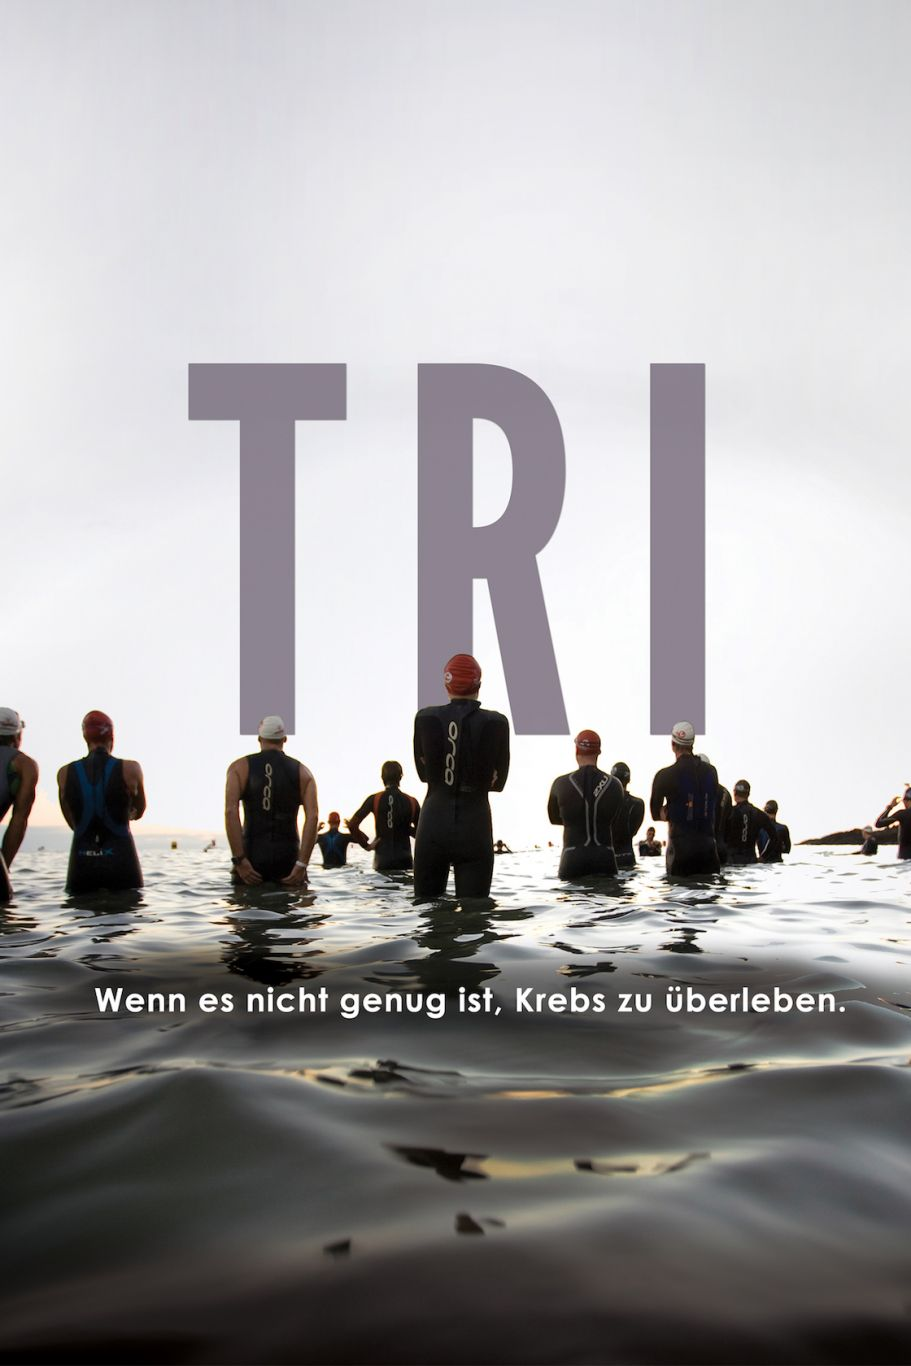 TRI movie available July 18 in German-speaking countries